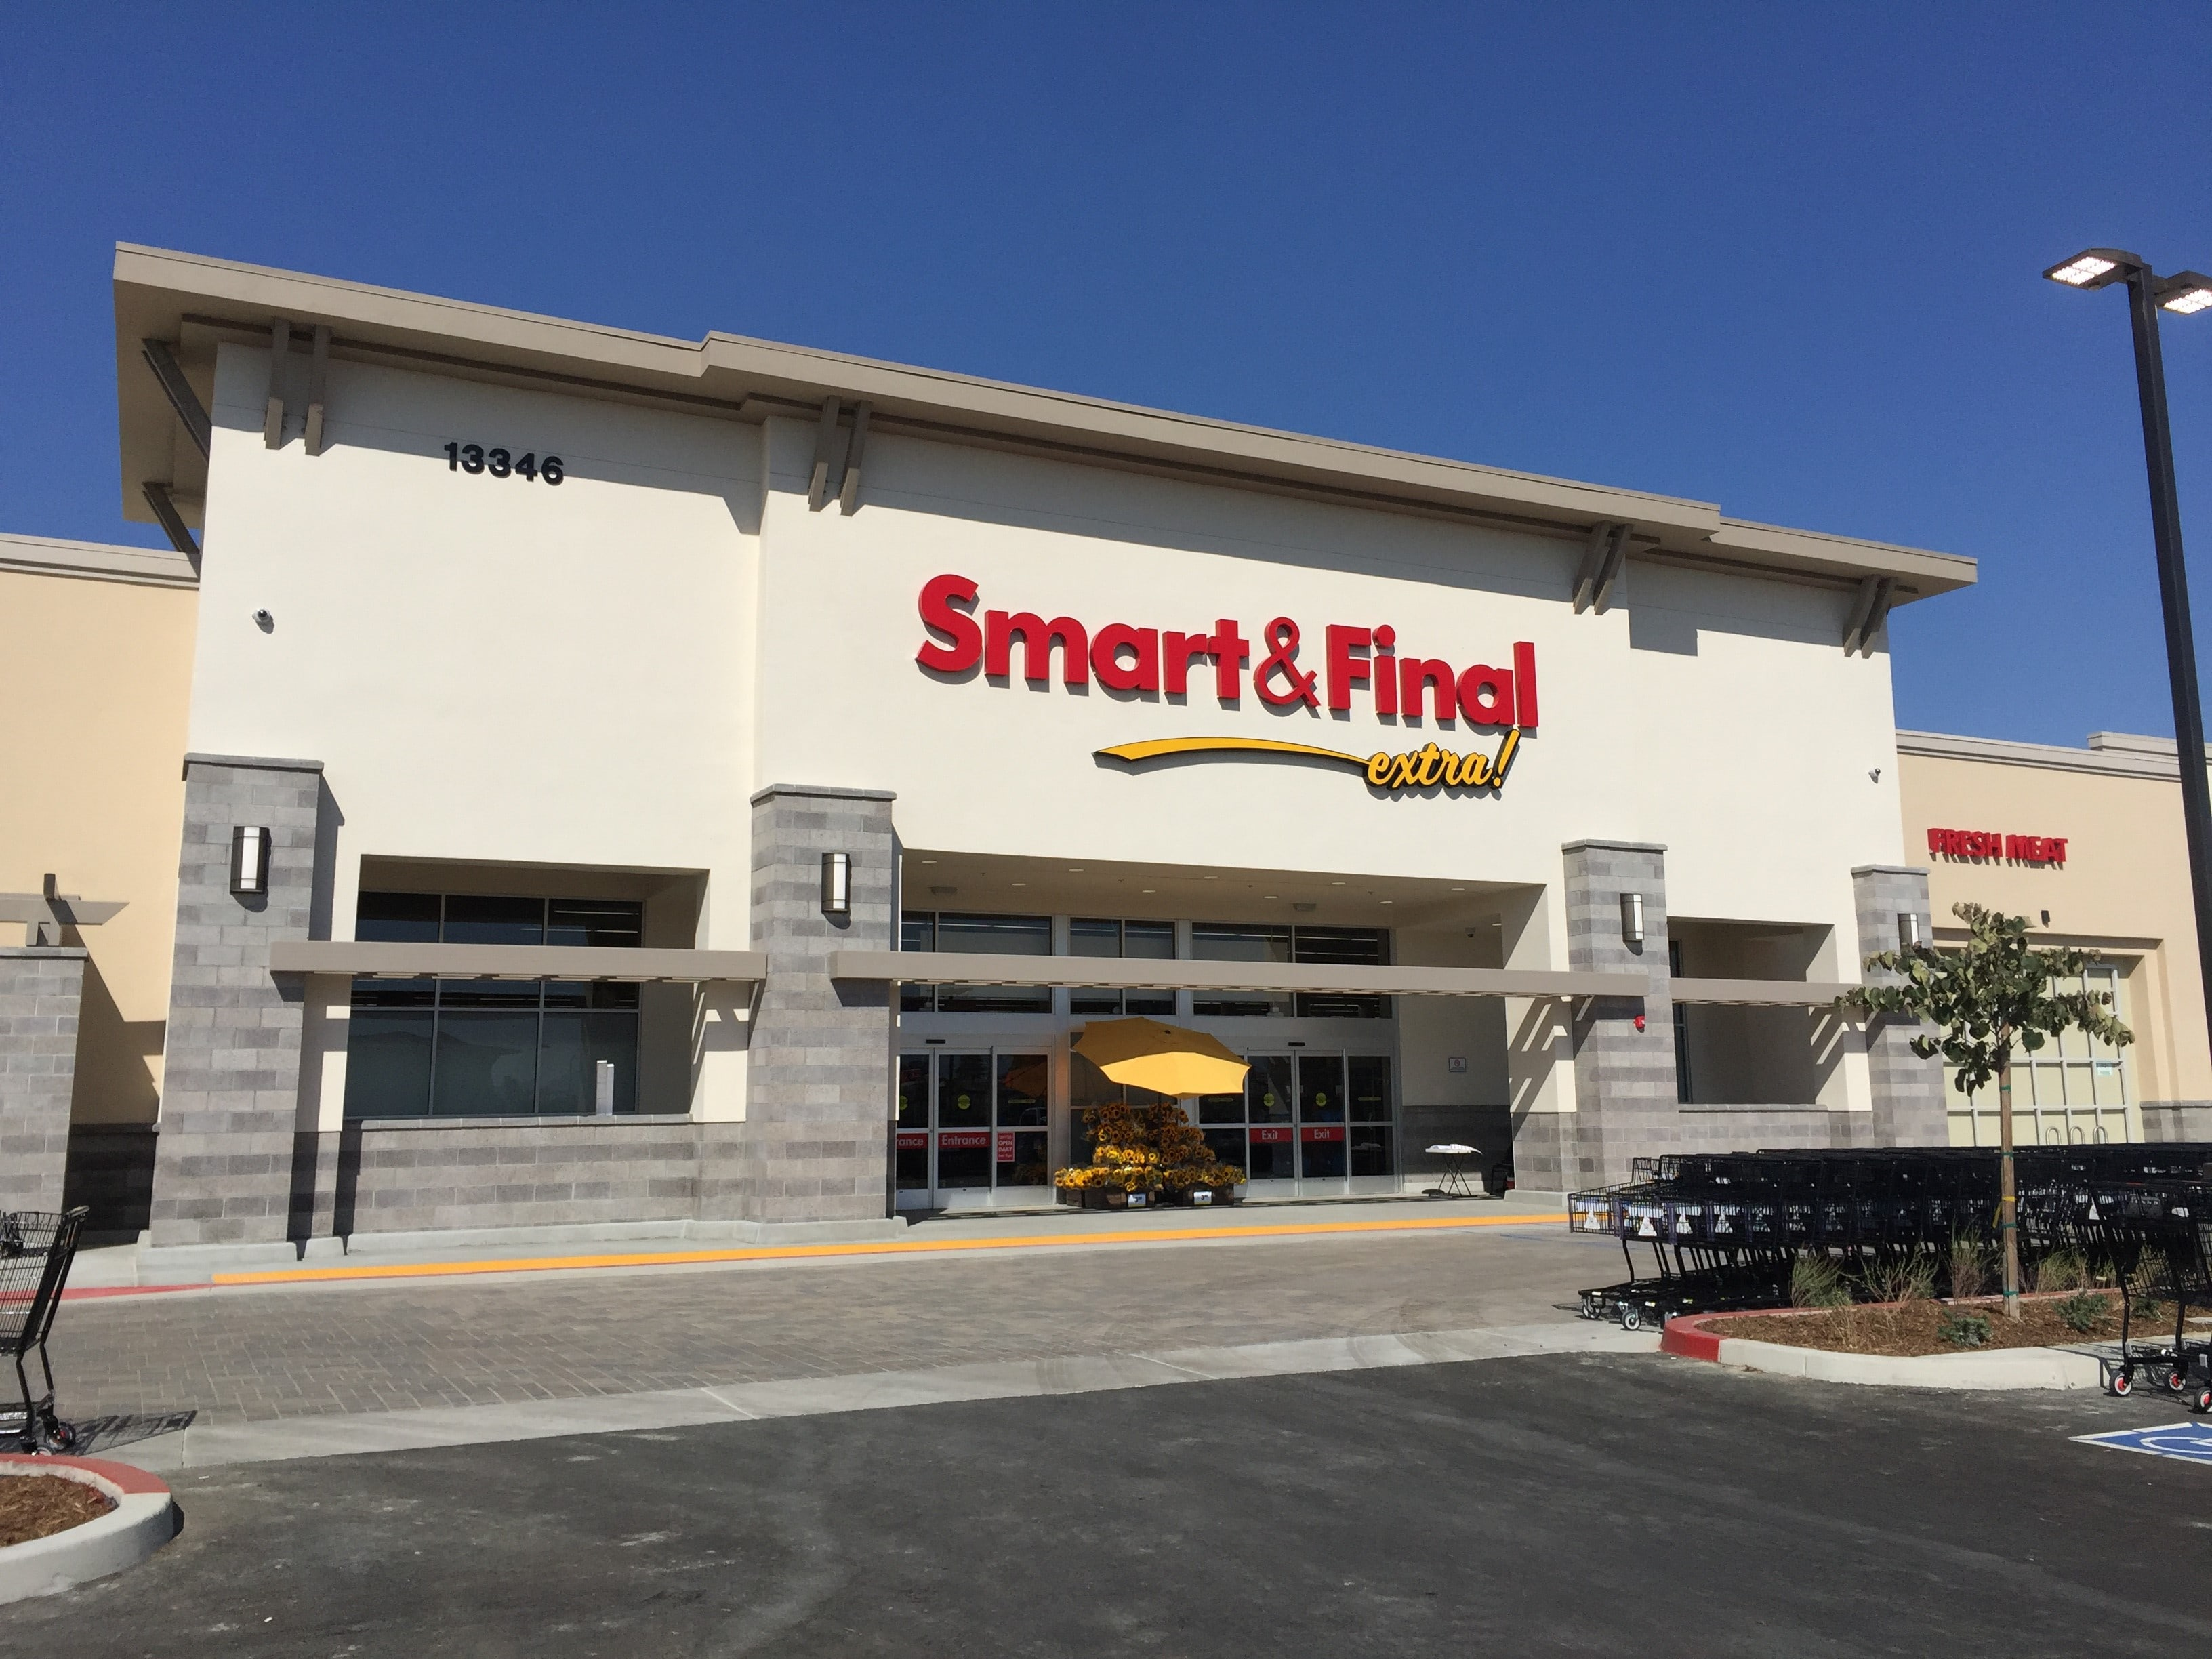 Smart & Final Store Front - Grocery Store in Eastvale, CA